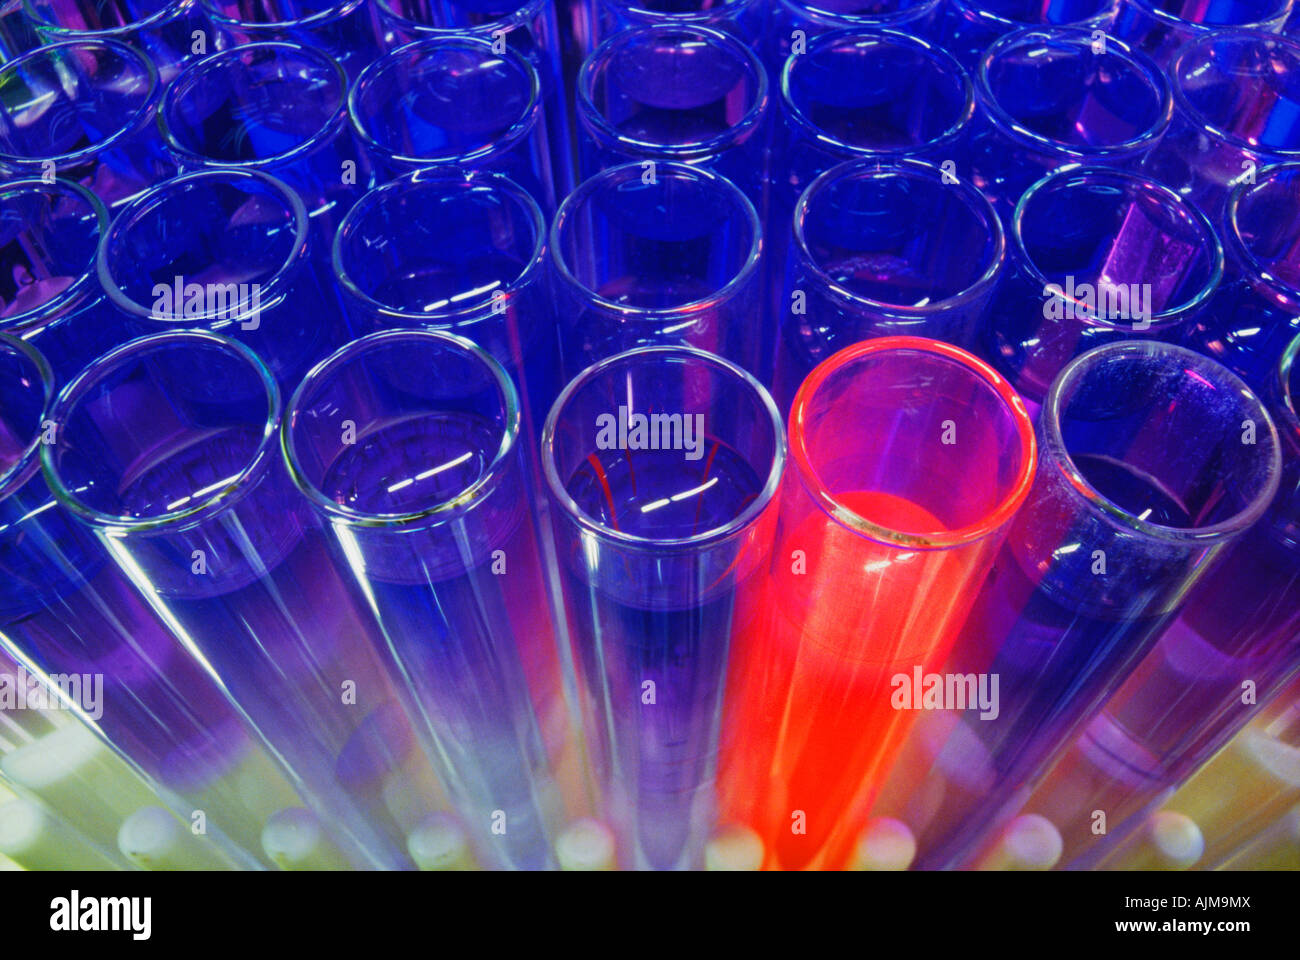 Test tubes in a test tube rack - Stock Image